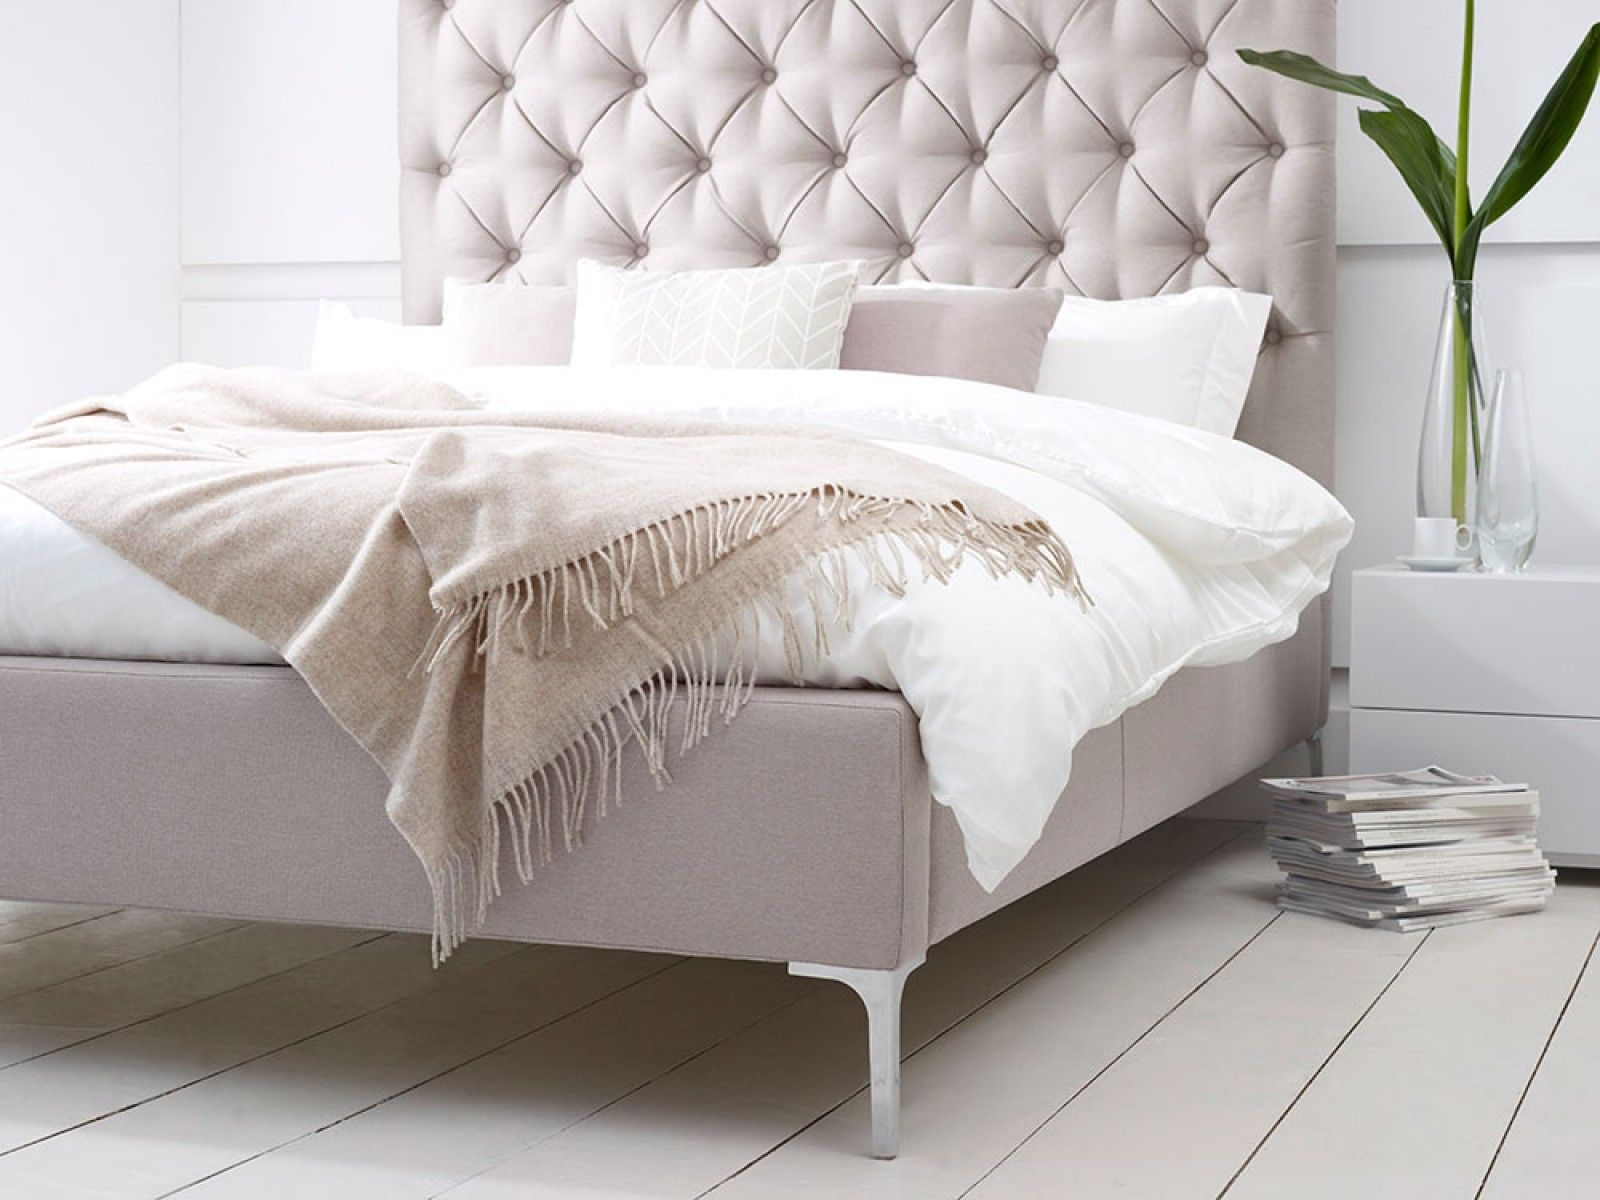 Bed headboard upholstered - Add A Touch Of Luxury To Your Master Bedroom With The Elise Tall Deep Buttoned Headboard